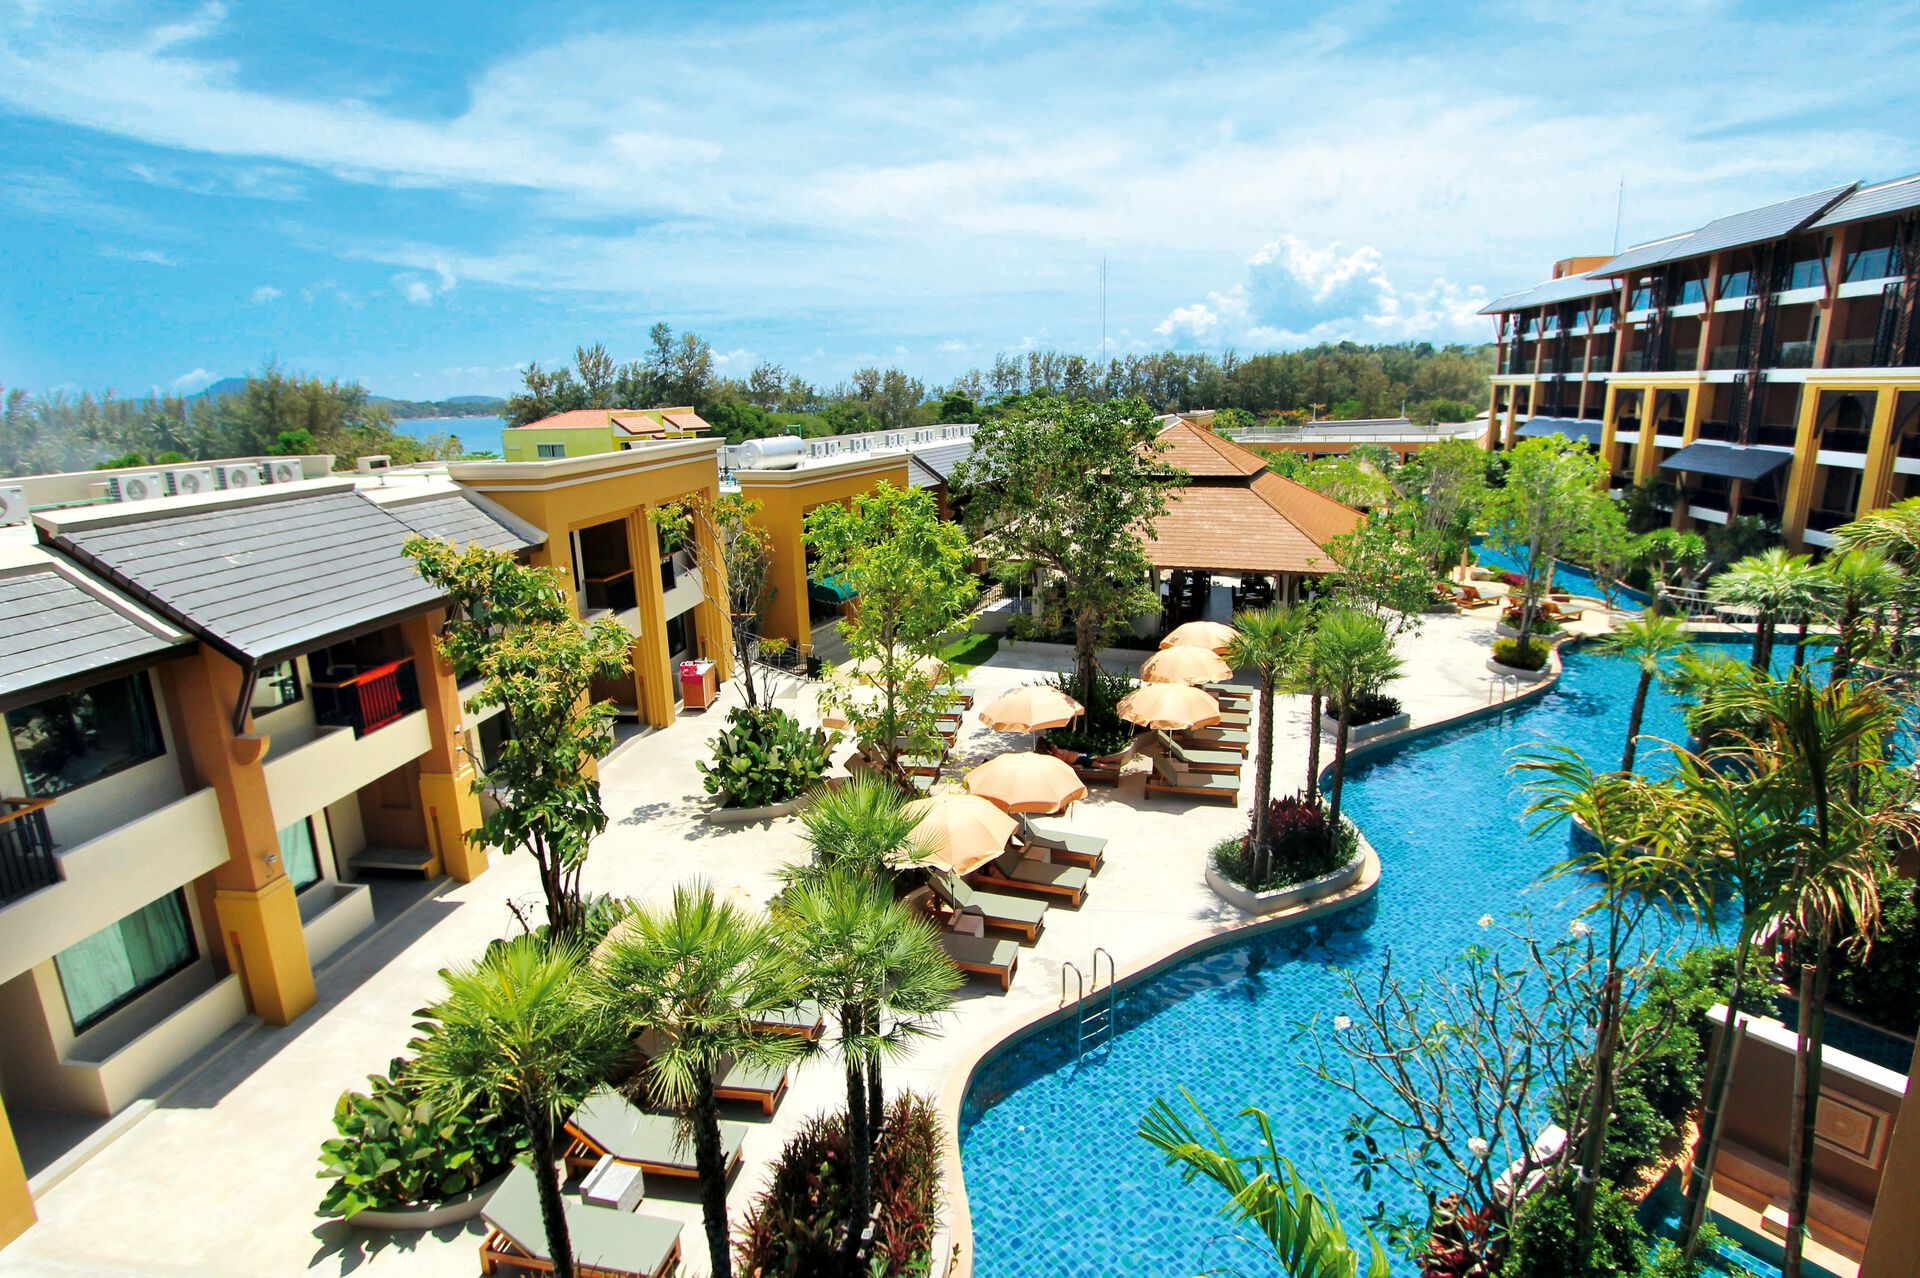 rawai palm beach resort - 4*